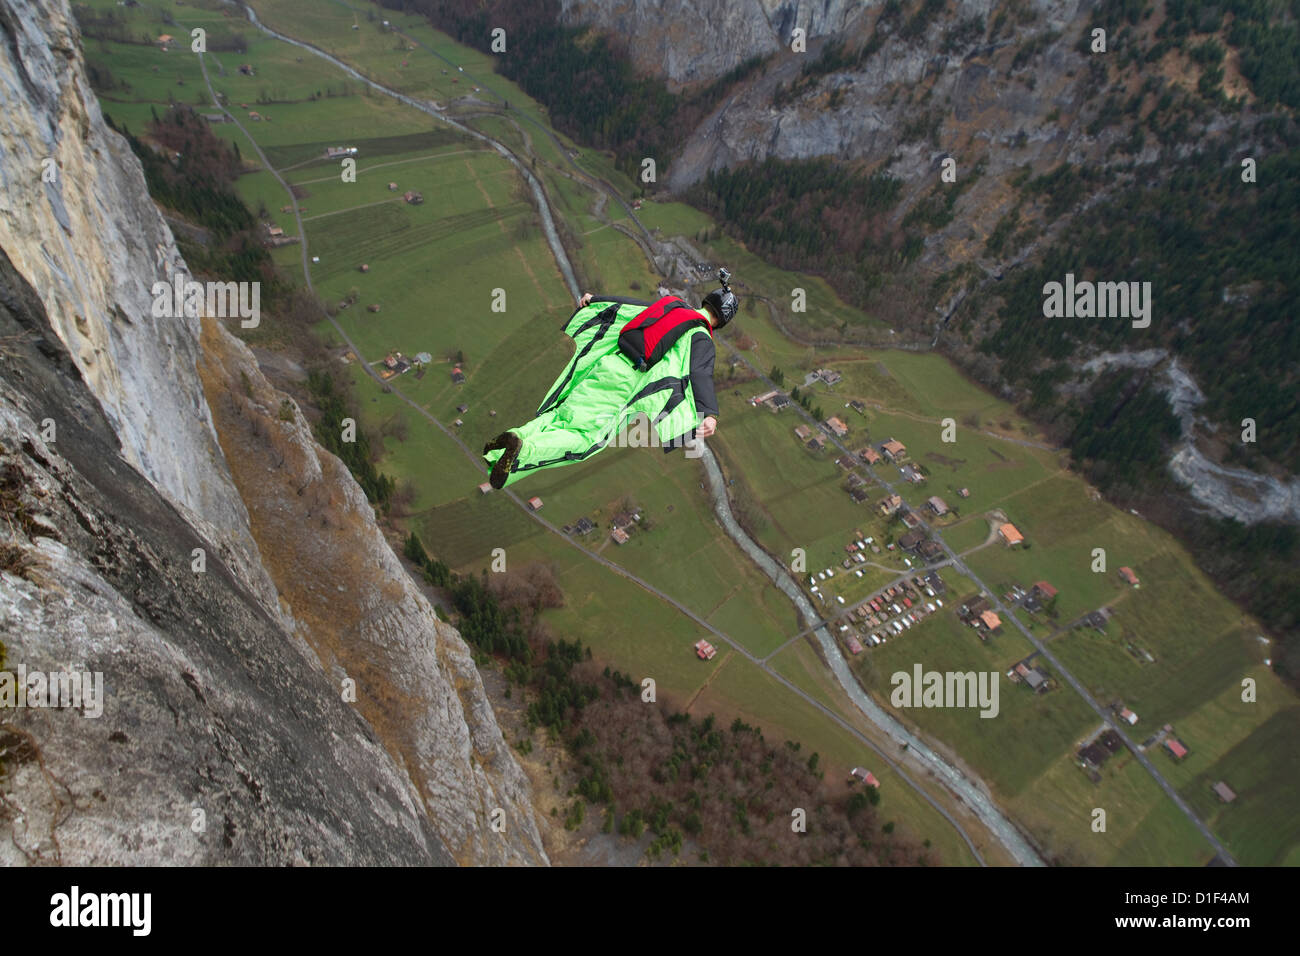 Basejumper with wingsuits in the air, Bern, Switzerland - Stock Image